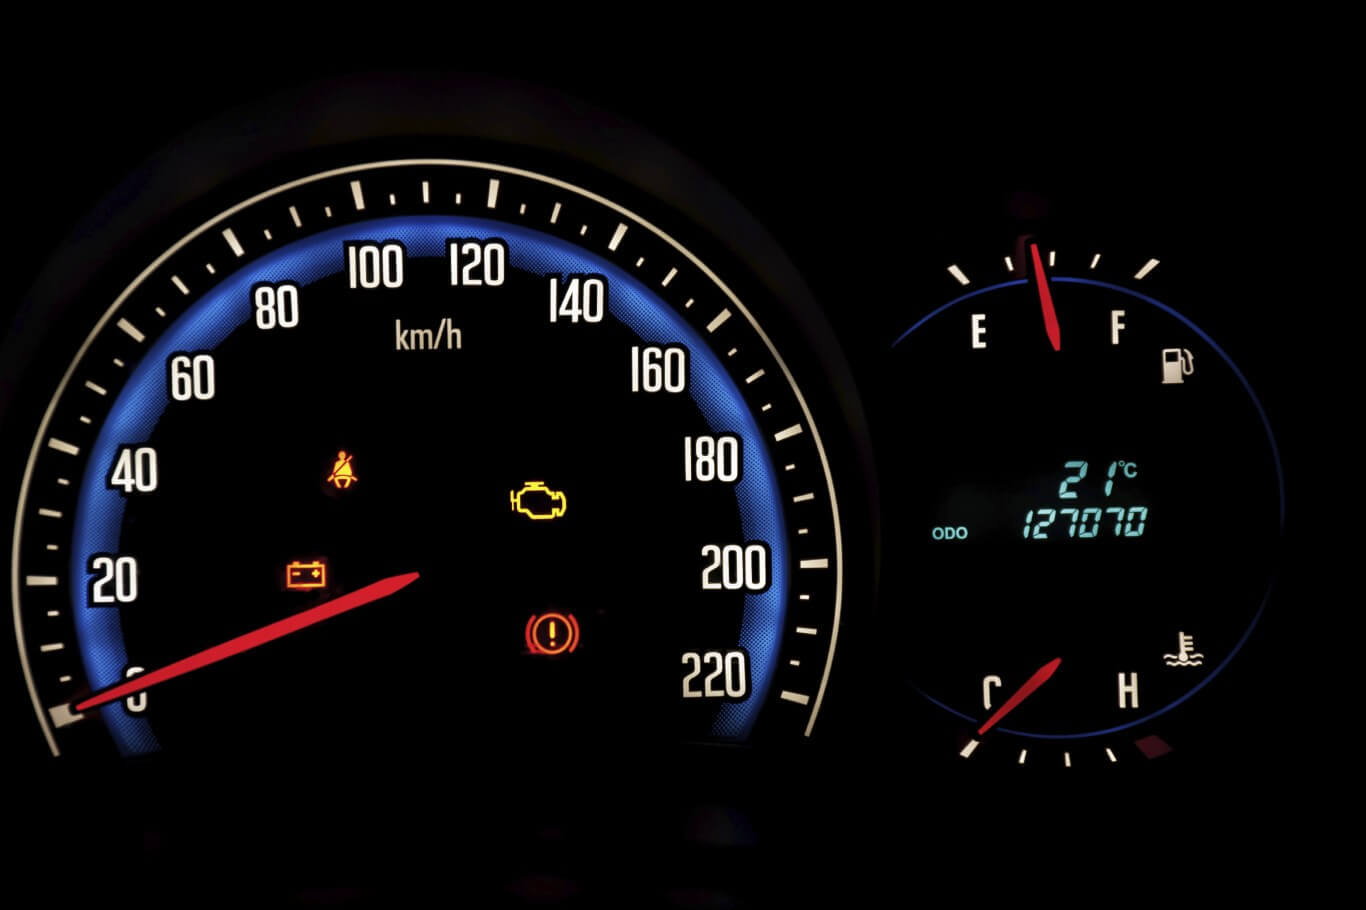 Check engine light diagnostics in merriam ks done with care why drive around with warning lights on your dash biocorpaavc